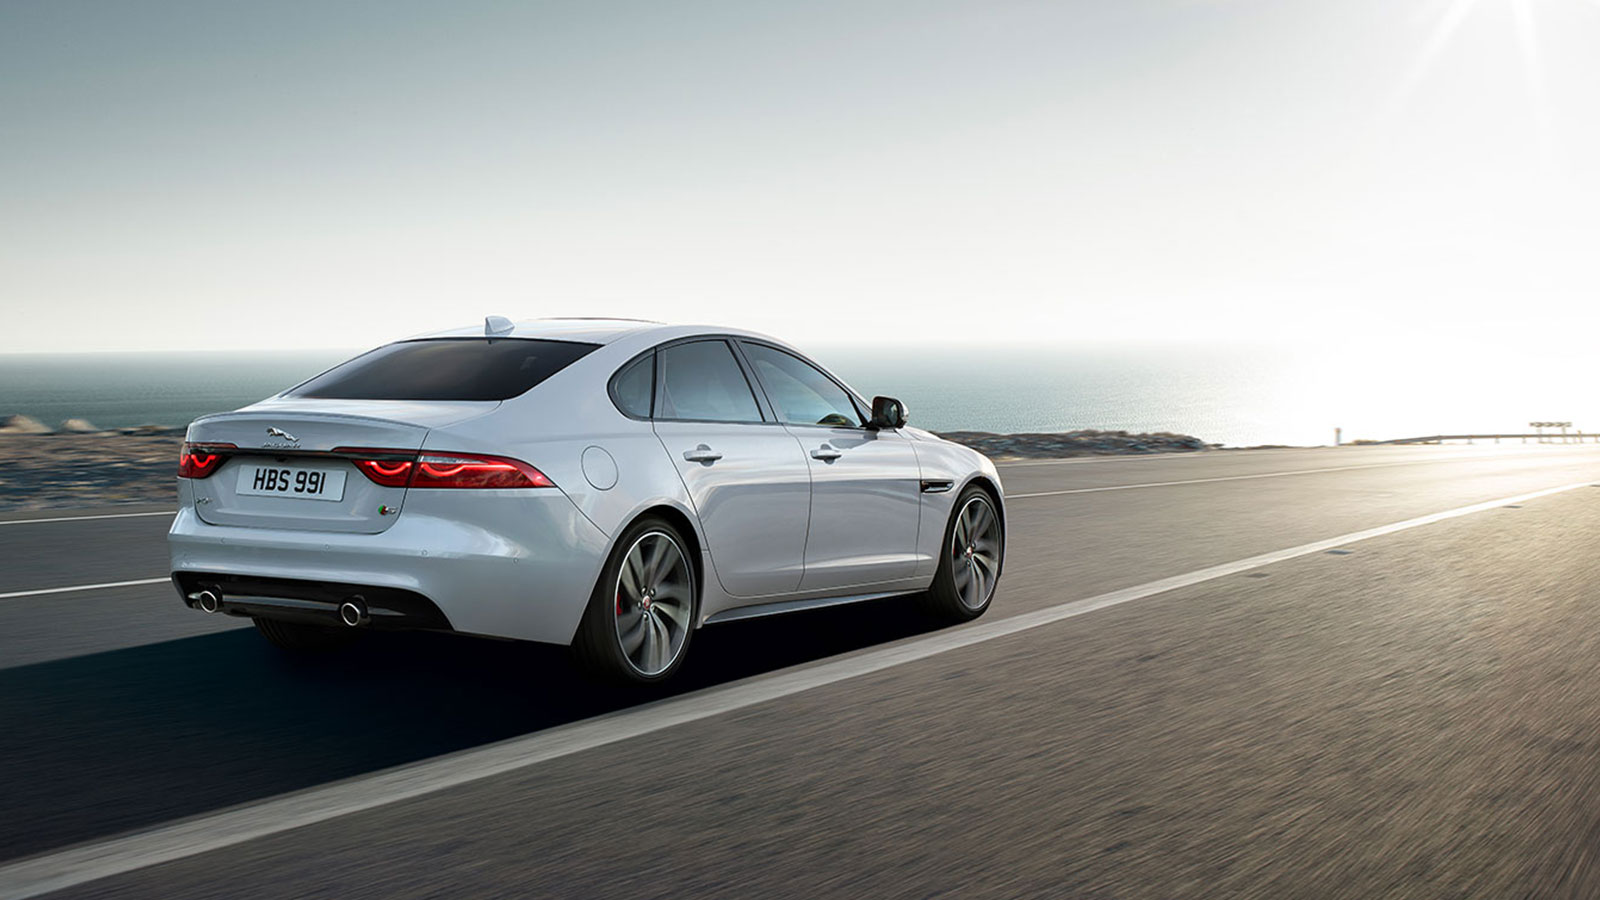 Jaguar XF 2.0d (180) Chequered Flag SPECIAL EDITIONS image 13